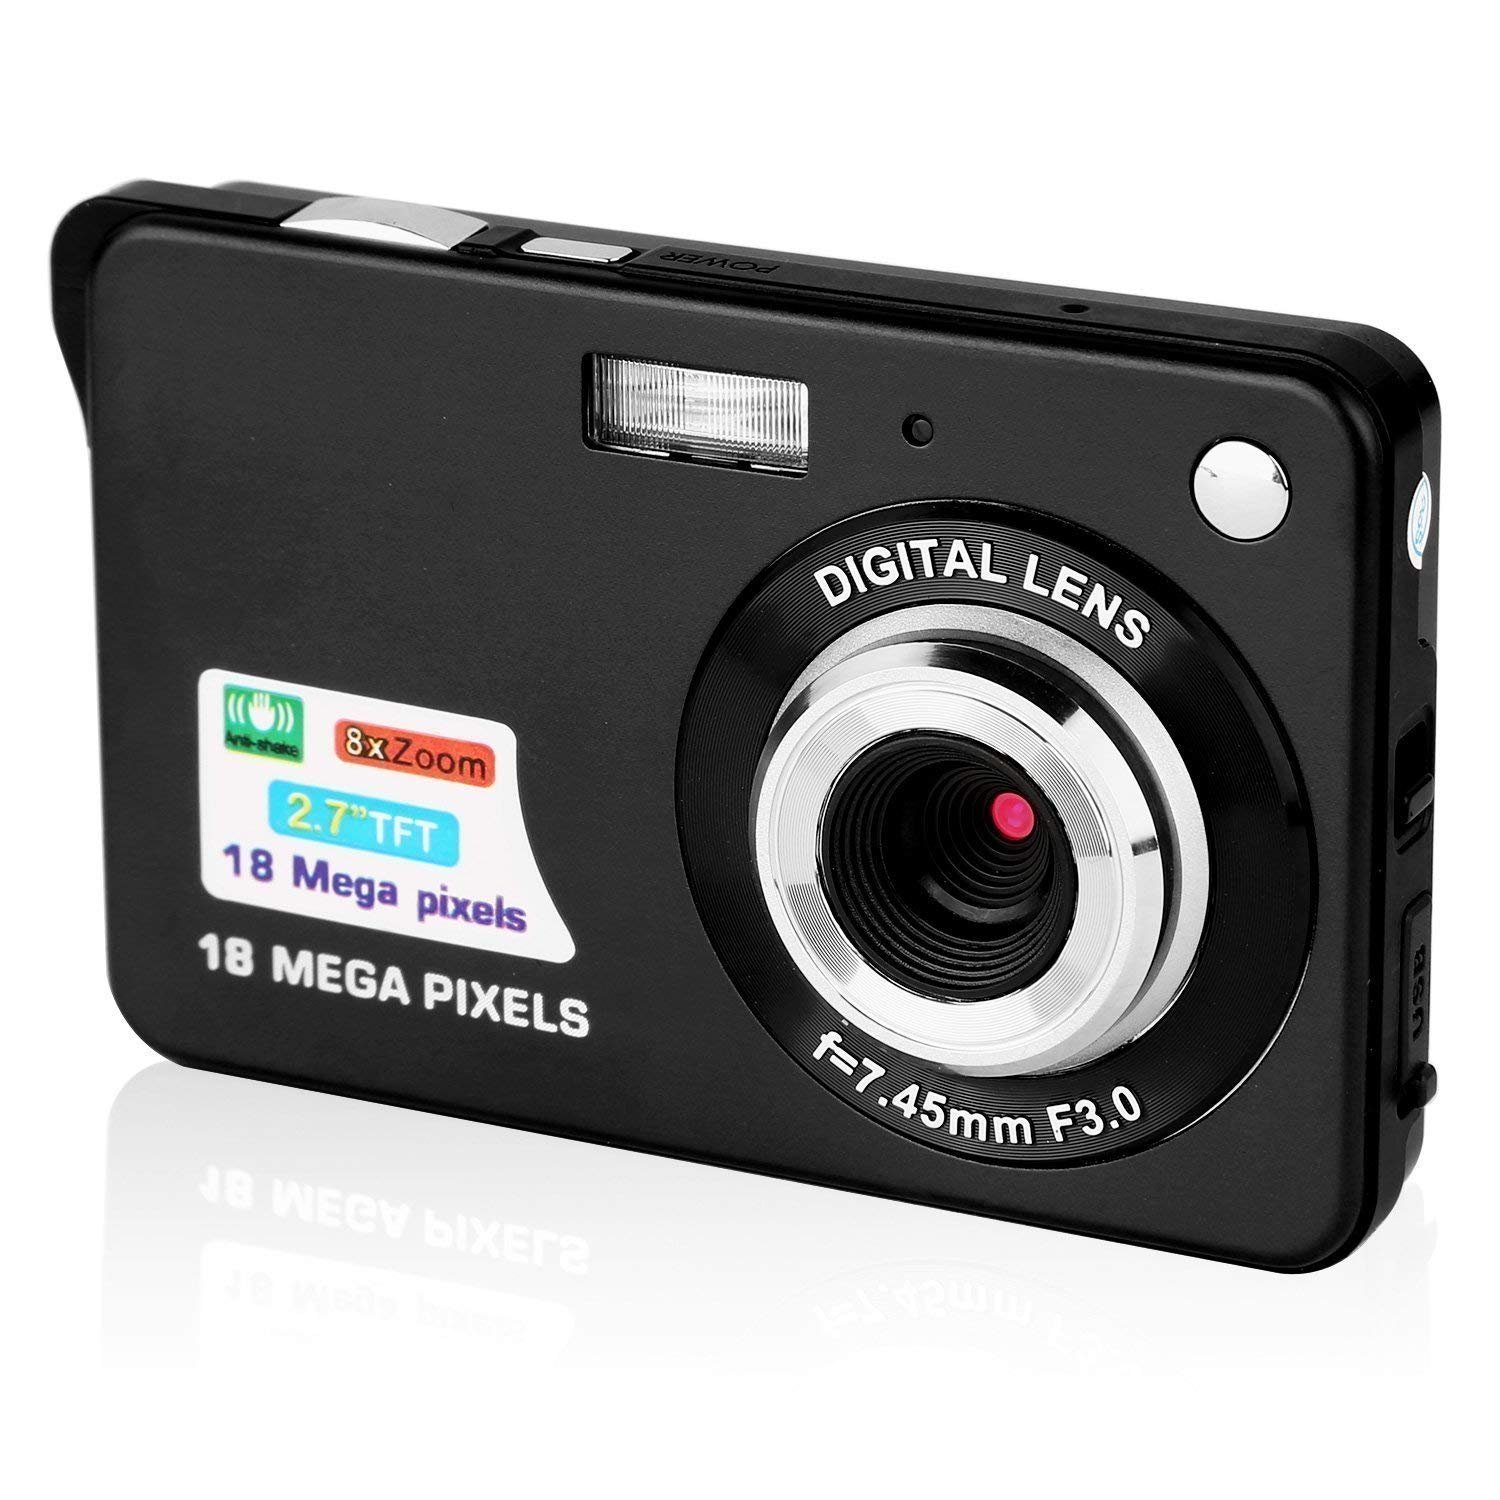 PowerLead 2.7 inch TFT LCD HD Mini Digital Camera, Fotocamere digitali compatte product image